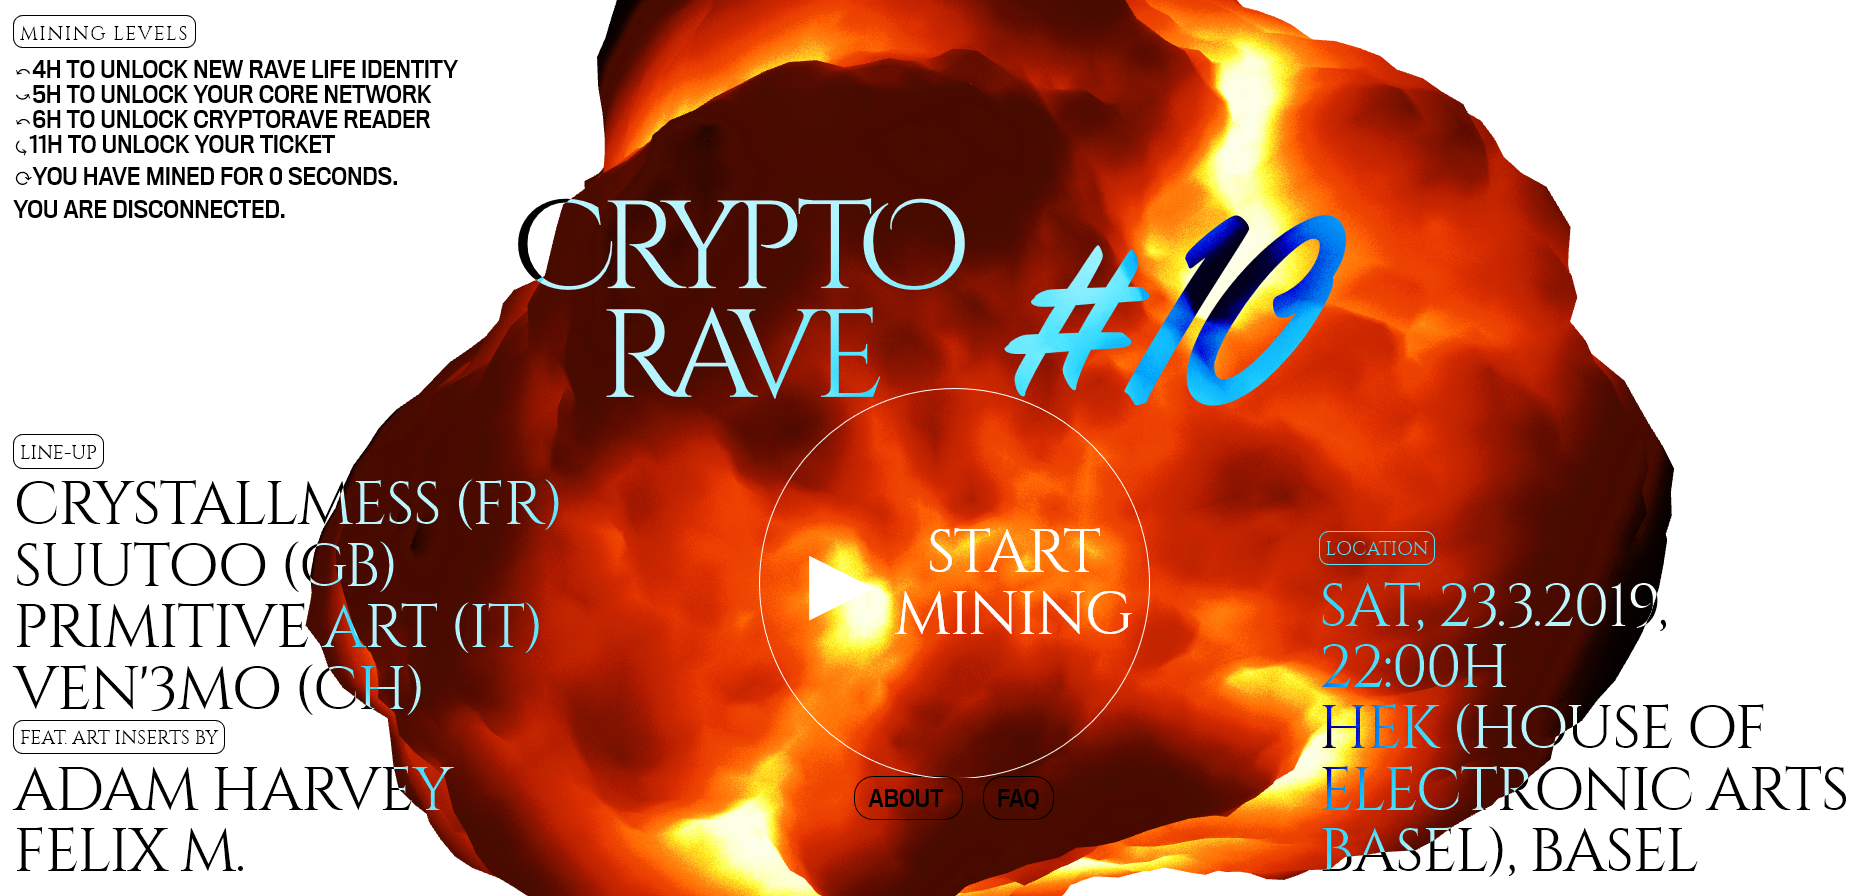 mining crypto to get your rave on